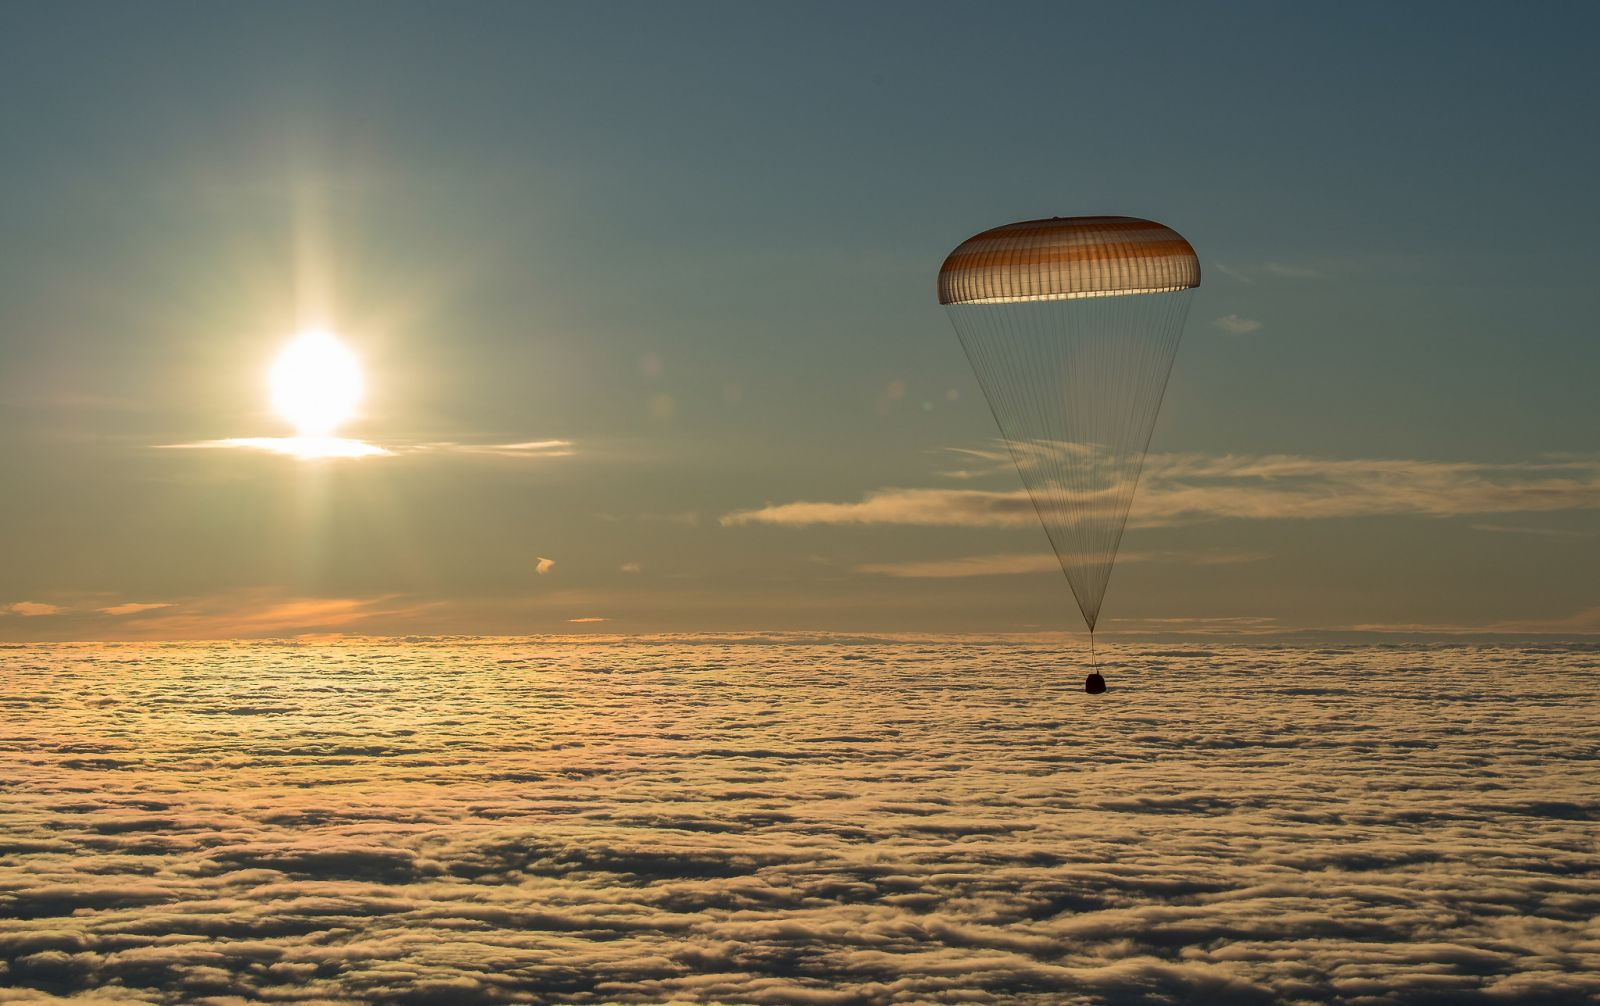 Soyuz MS-06 descends with Expedition 54 crew members Alexander Misurkin of Roscosmos and Joe Acaba and Mark Vande Hei of NASA. Photo Credit: Bill Ingalls / NASA